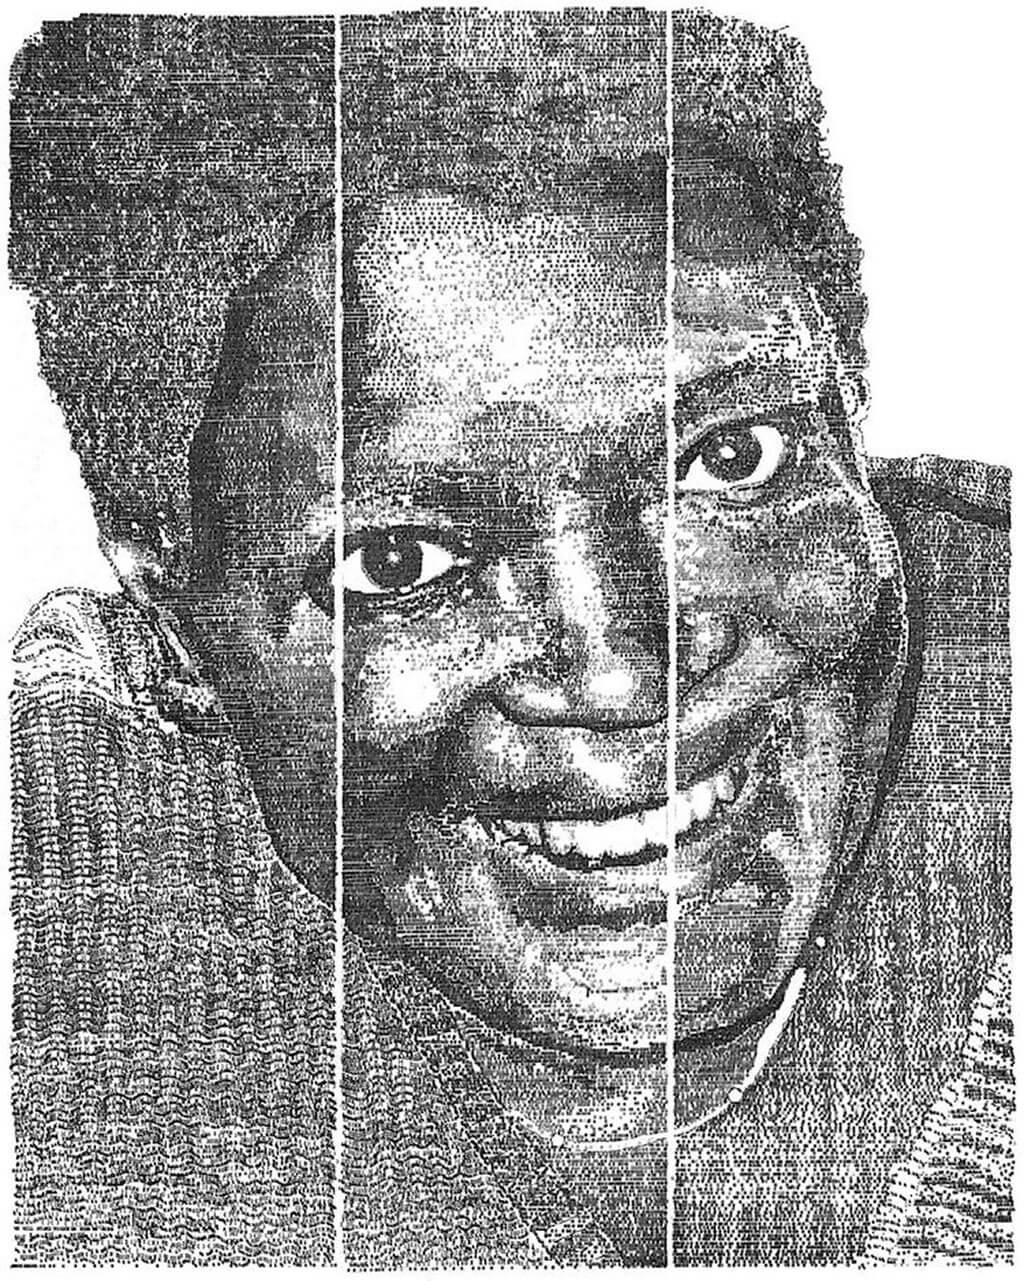 Typewriter portrait created with 100,000 letters, numbers, and punctuation marks